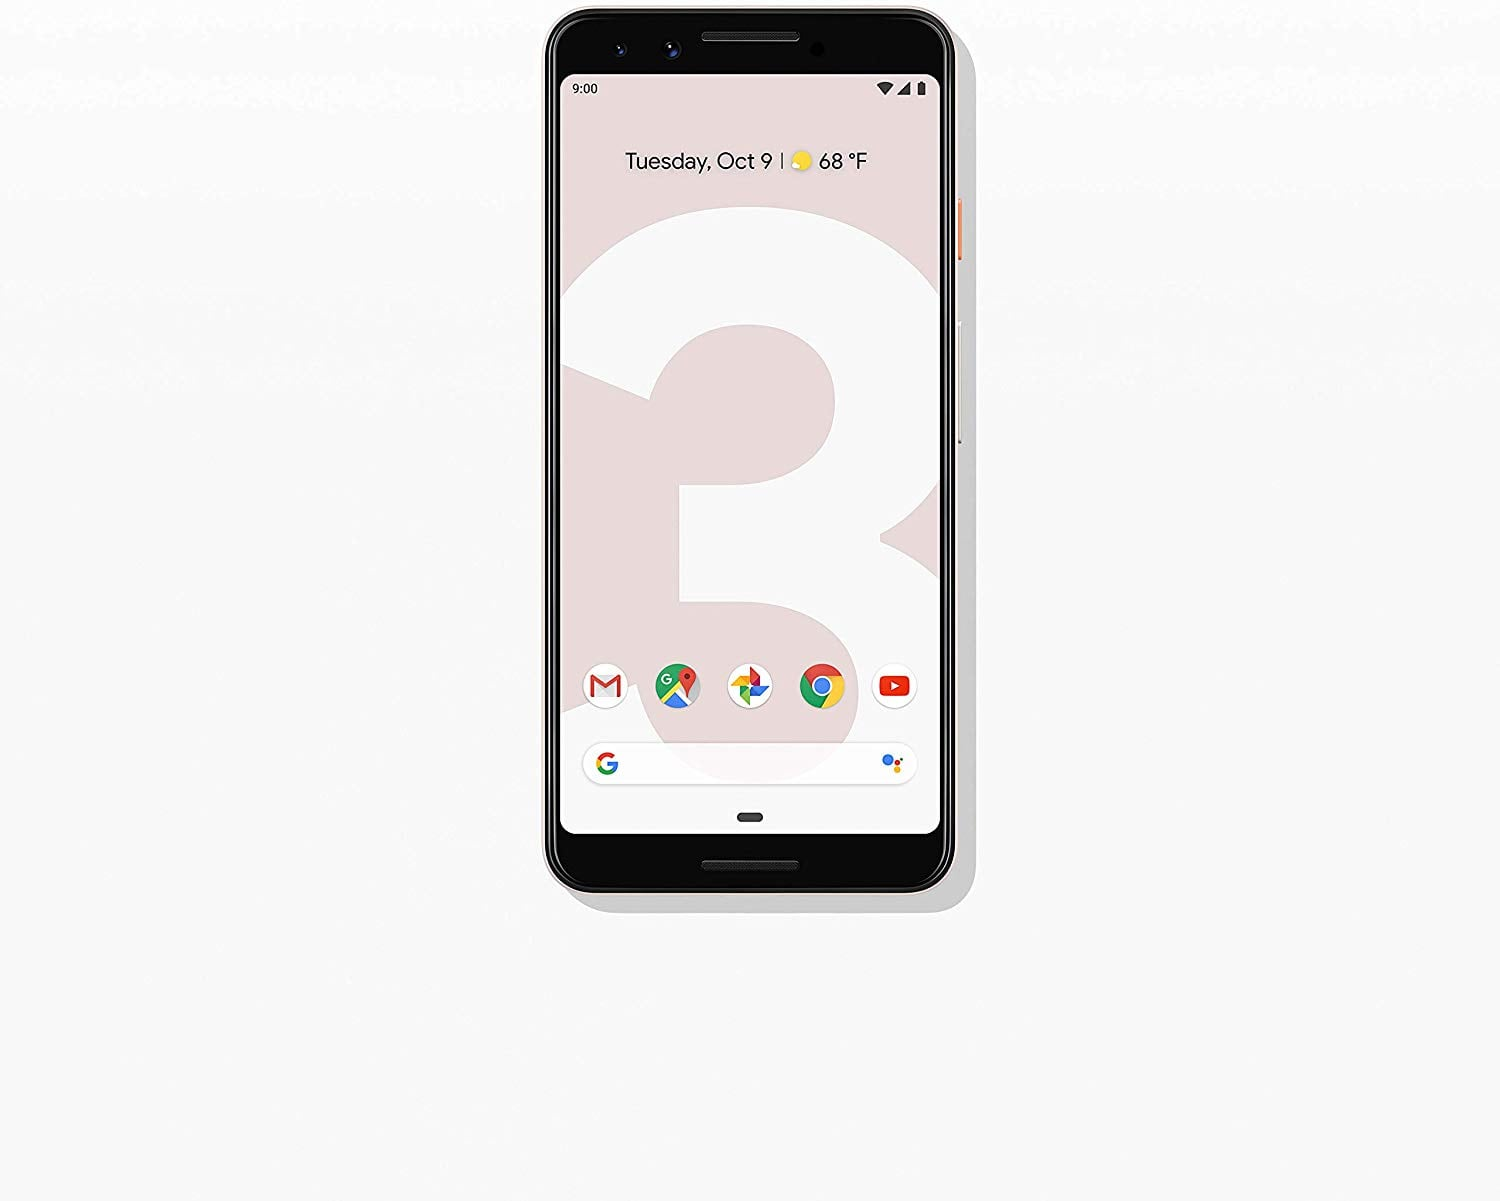 Google - Pixel 3 with 128GB Memory Cell Phone (Unlocked) - Not Pink From Amazon $478.6